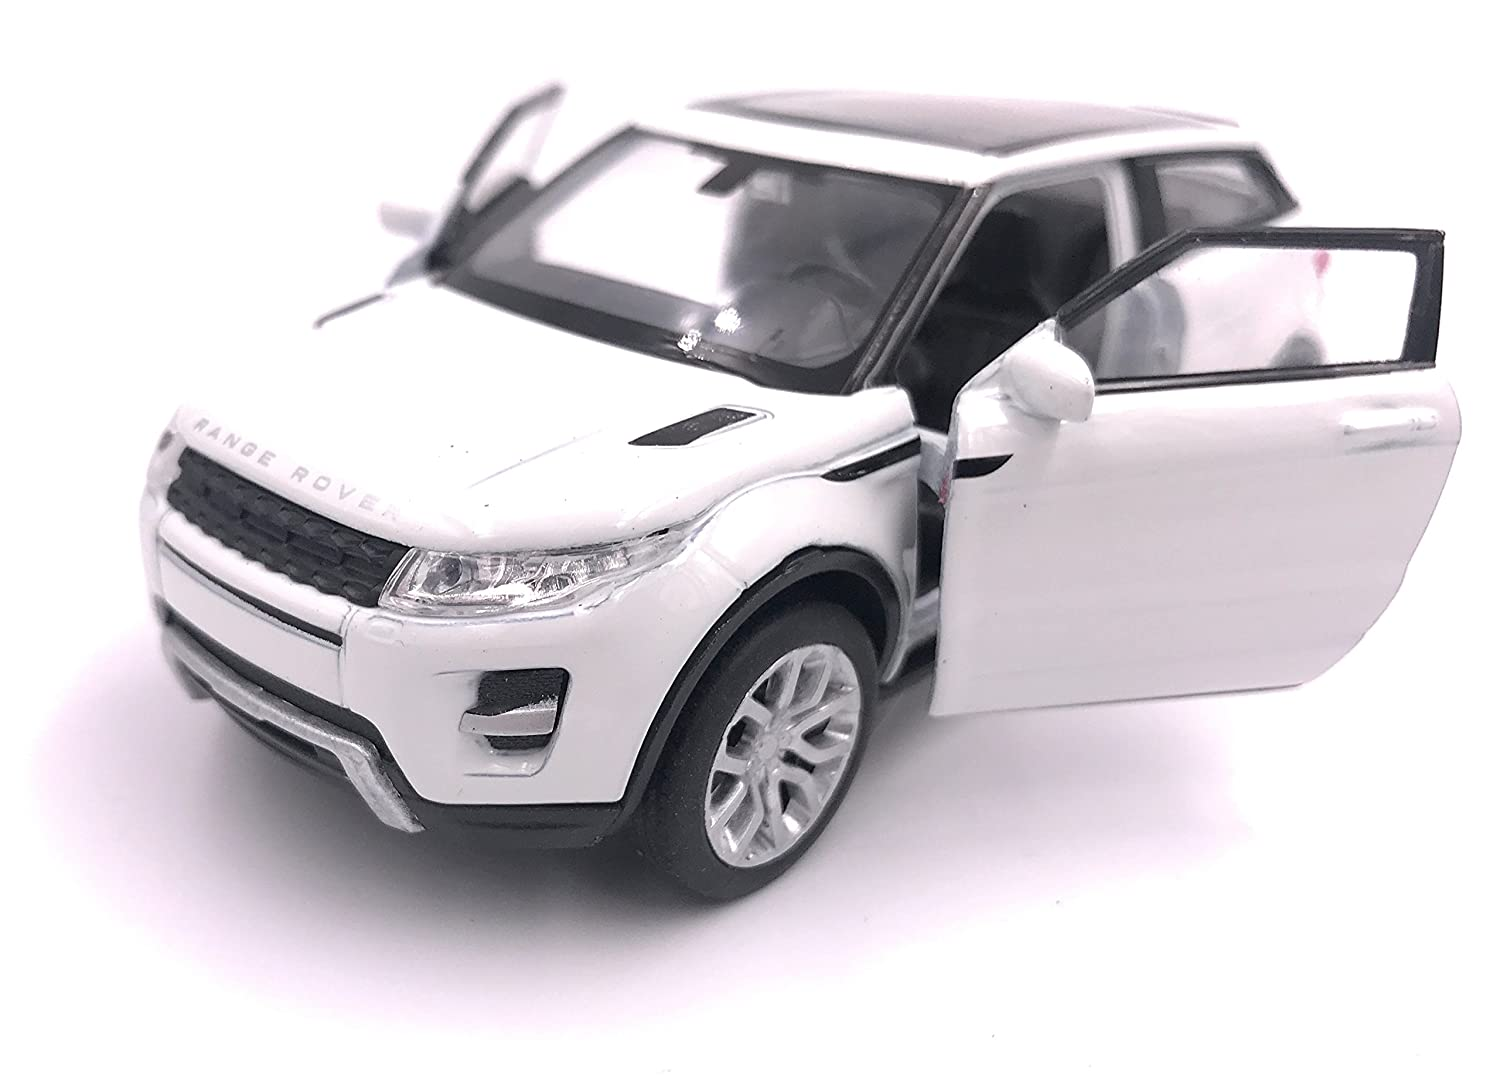 H-Customs Bilancia per Auto Modello Welly Range Rover Evoque Model 1:34 Colore Casuale hcmrrevoqueblister